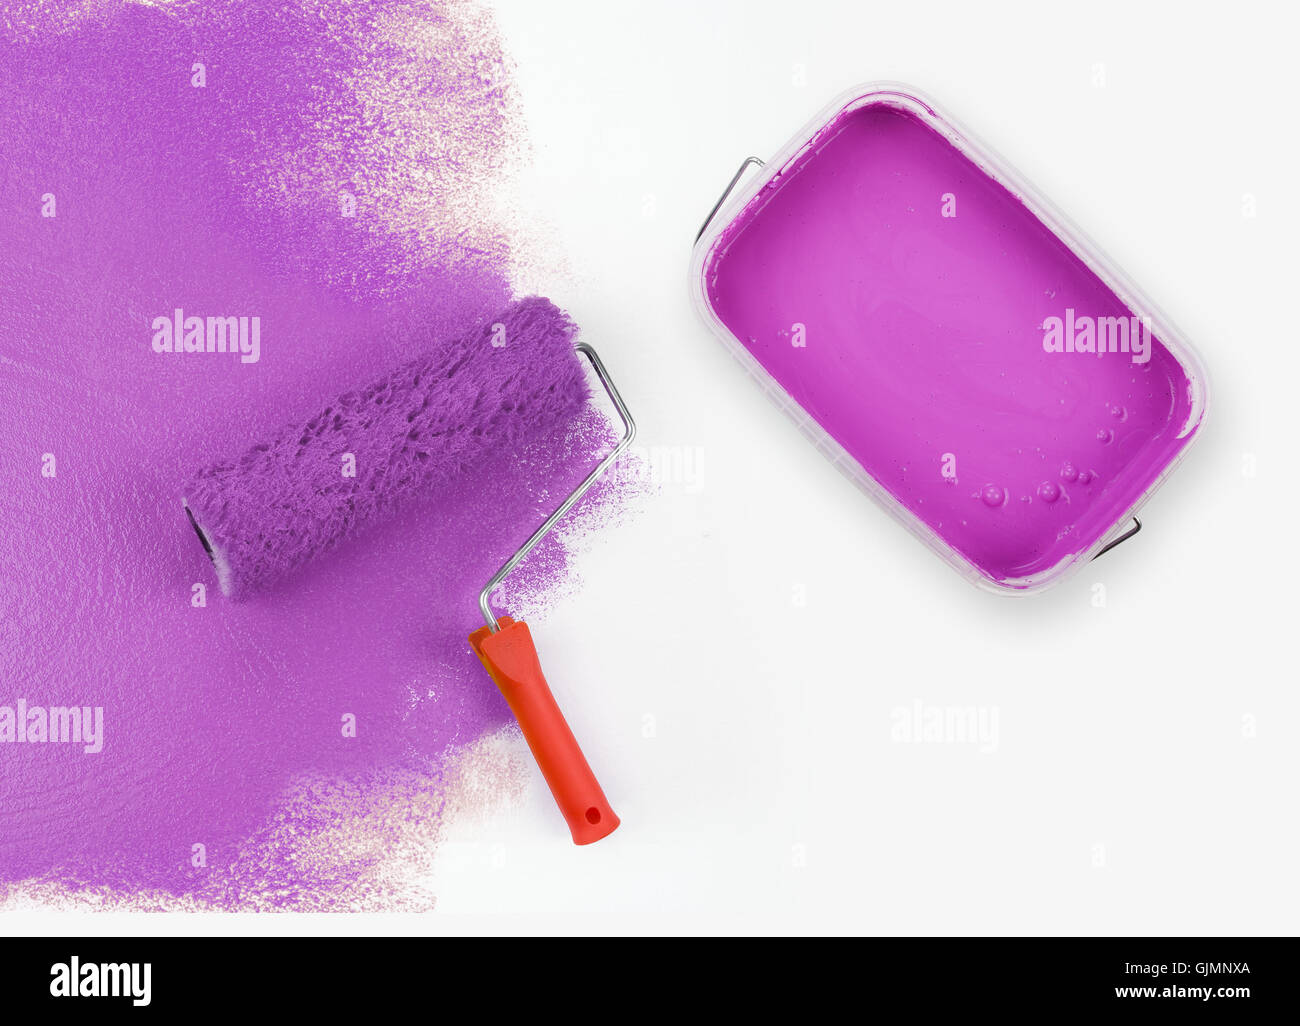 painting magenta roller - Stock Image